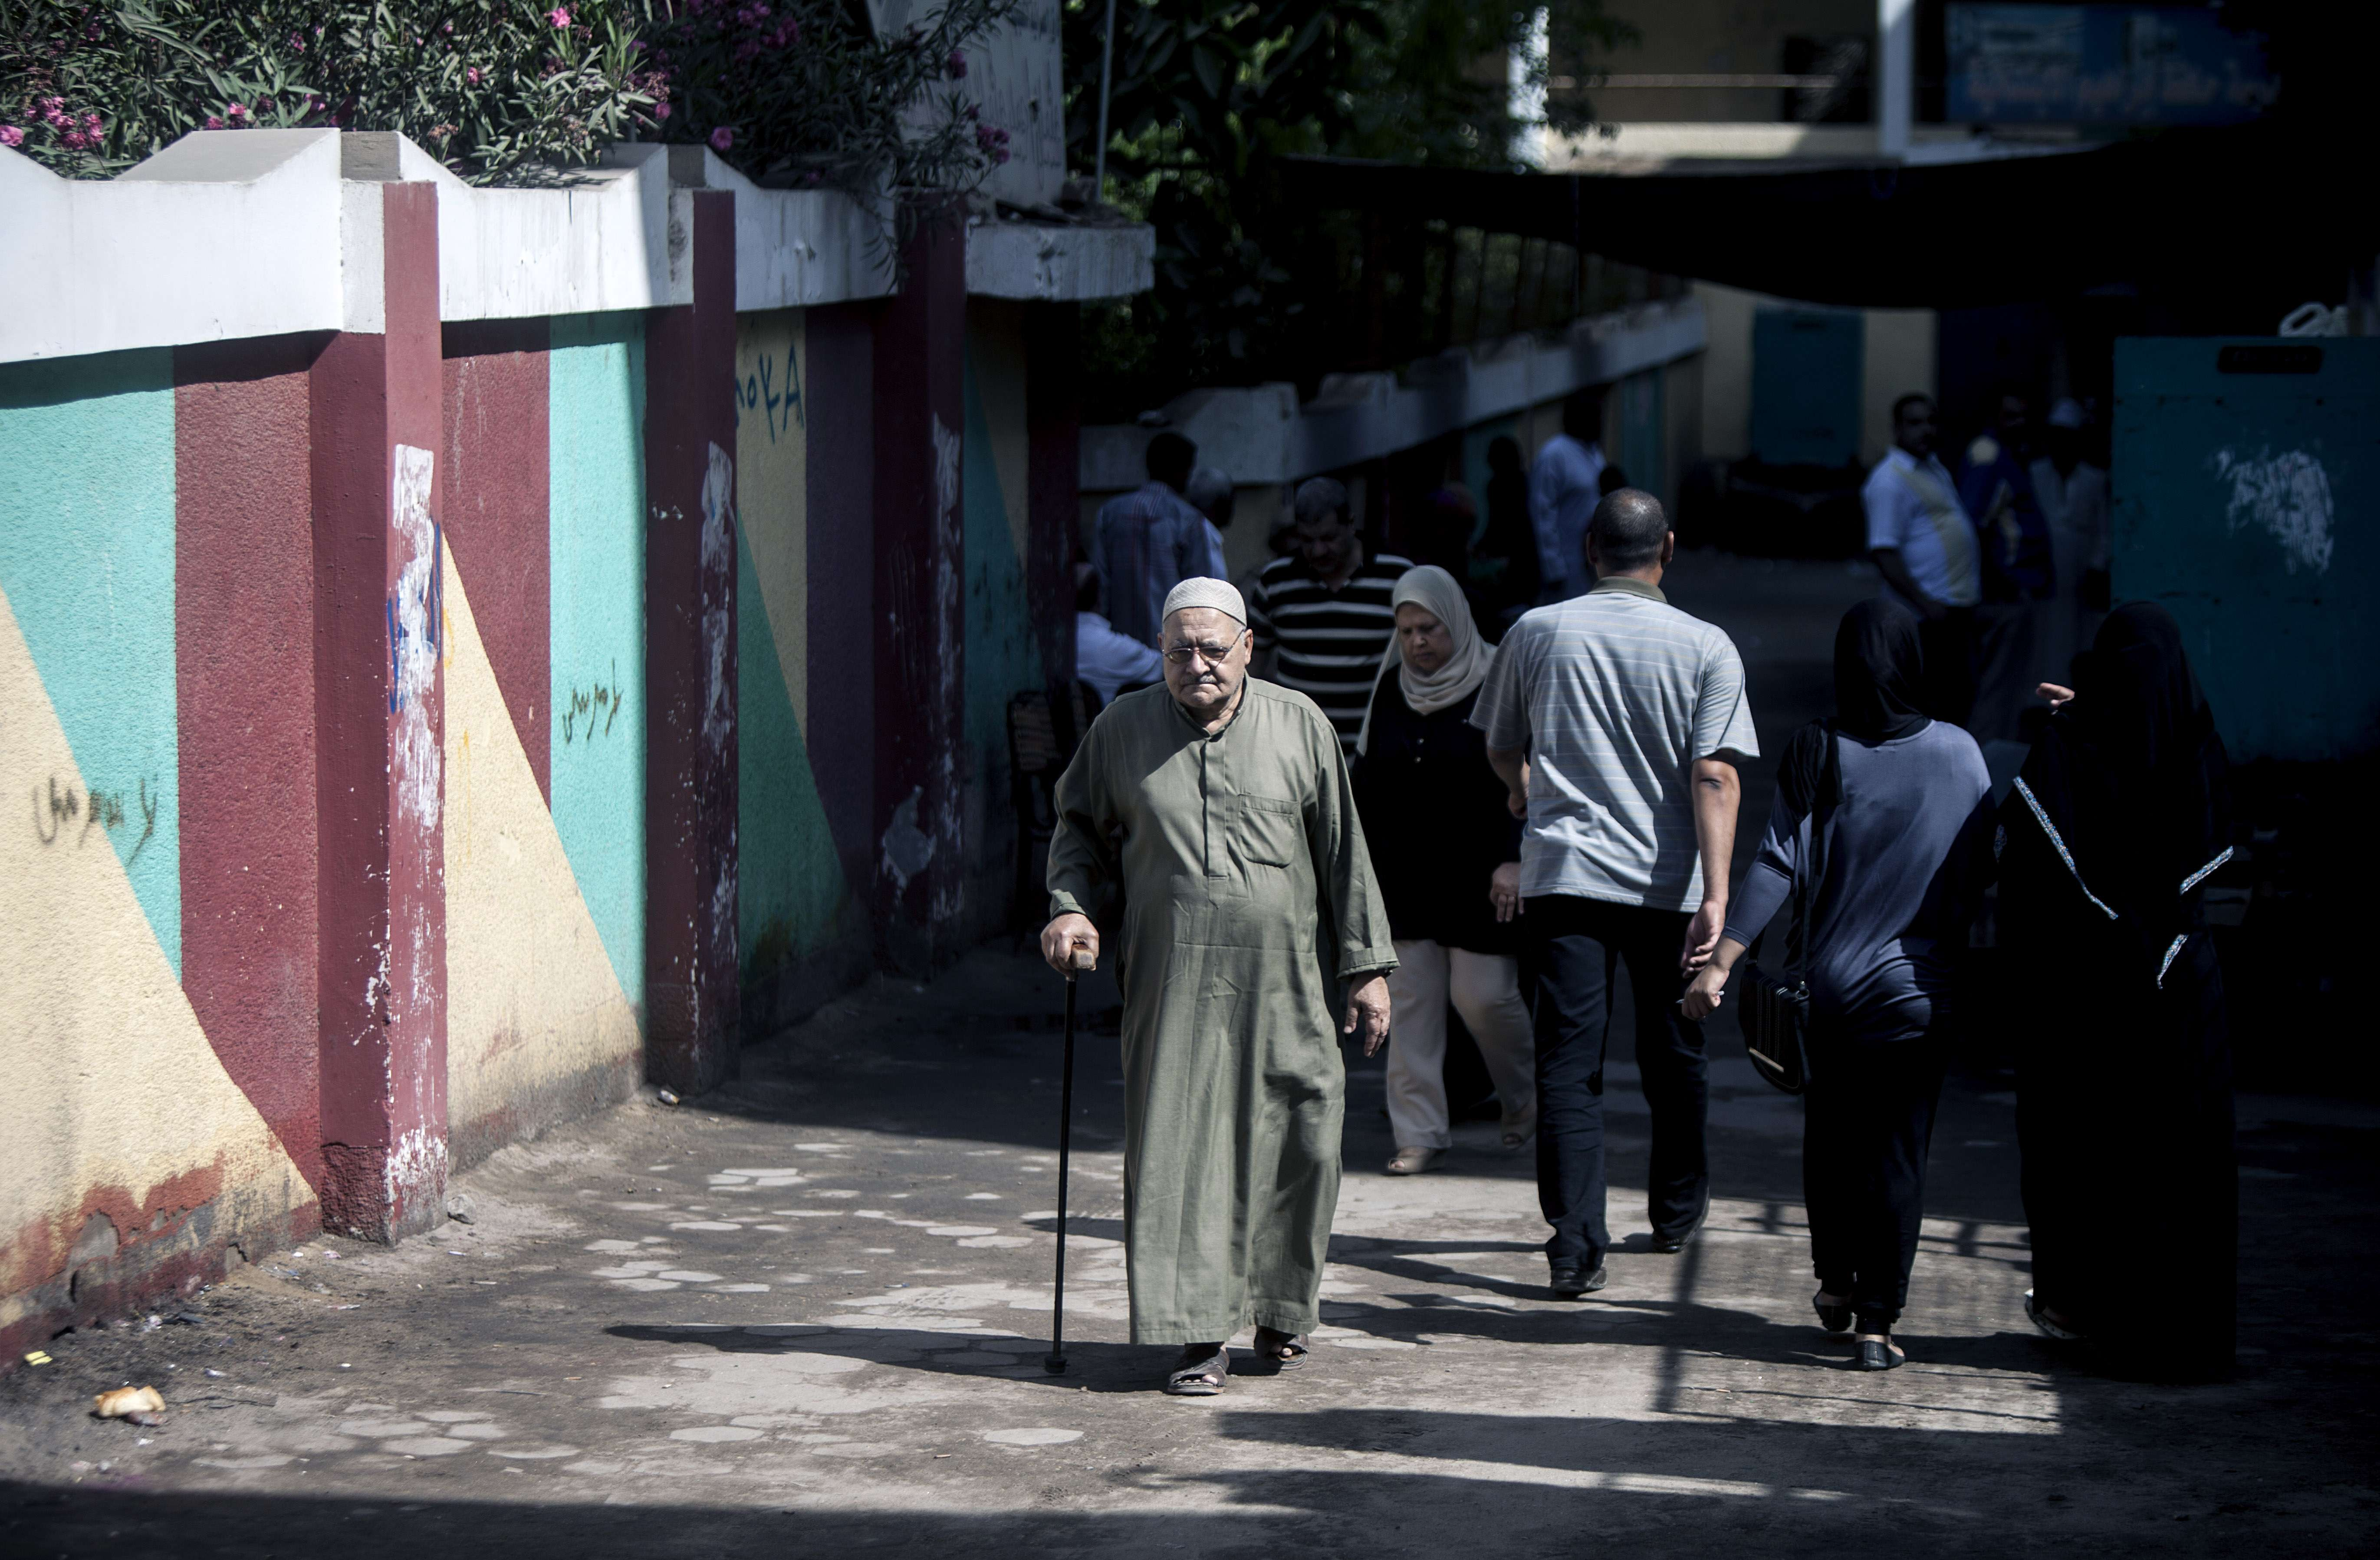 An Egyptian man walks past a polling station in Cairo on May 27, 2014, on the second day of Egypt's presidential election. Sisi is expected to trounce his only rival, leftist leader Hamdeen Sabbahi, in Egypt's second freely held presidential election, which is being held over two days.  (AFP PHOTO/MAHMOUD KHALED)